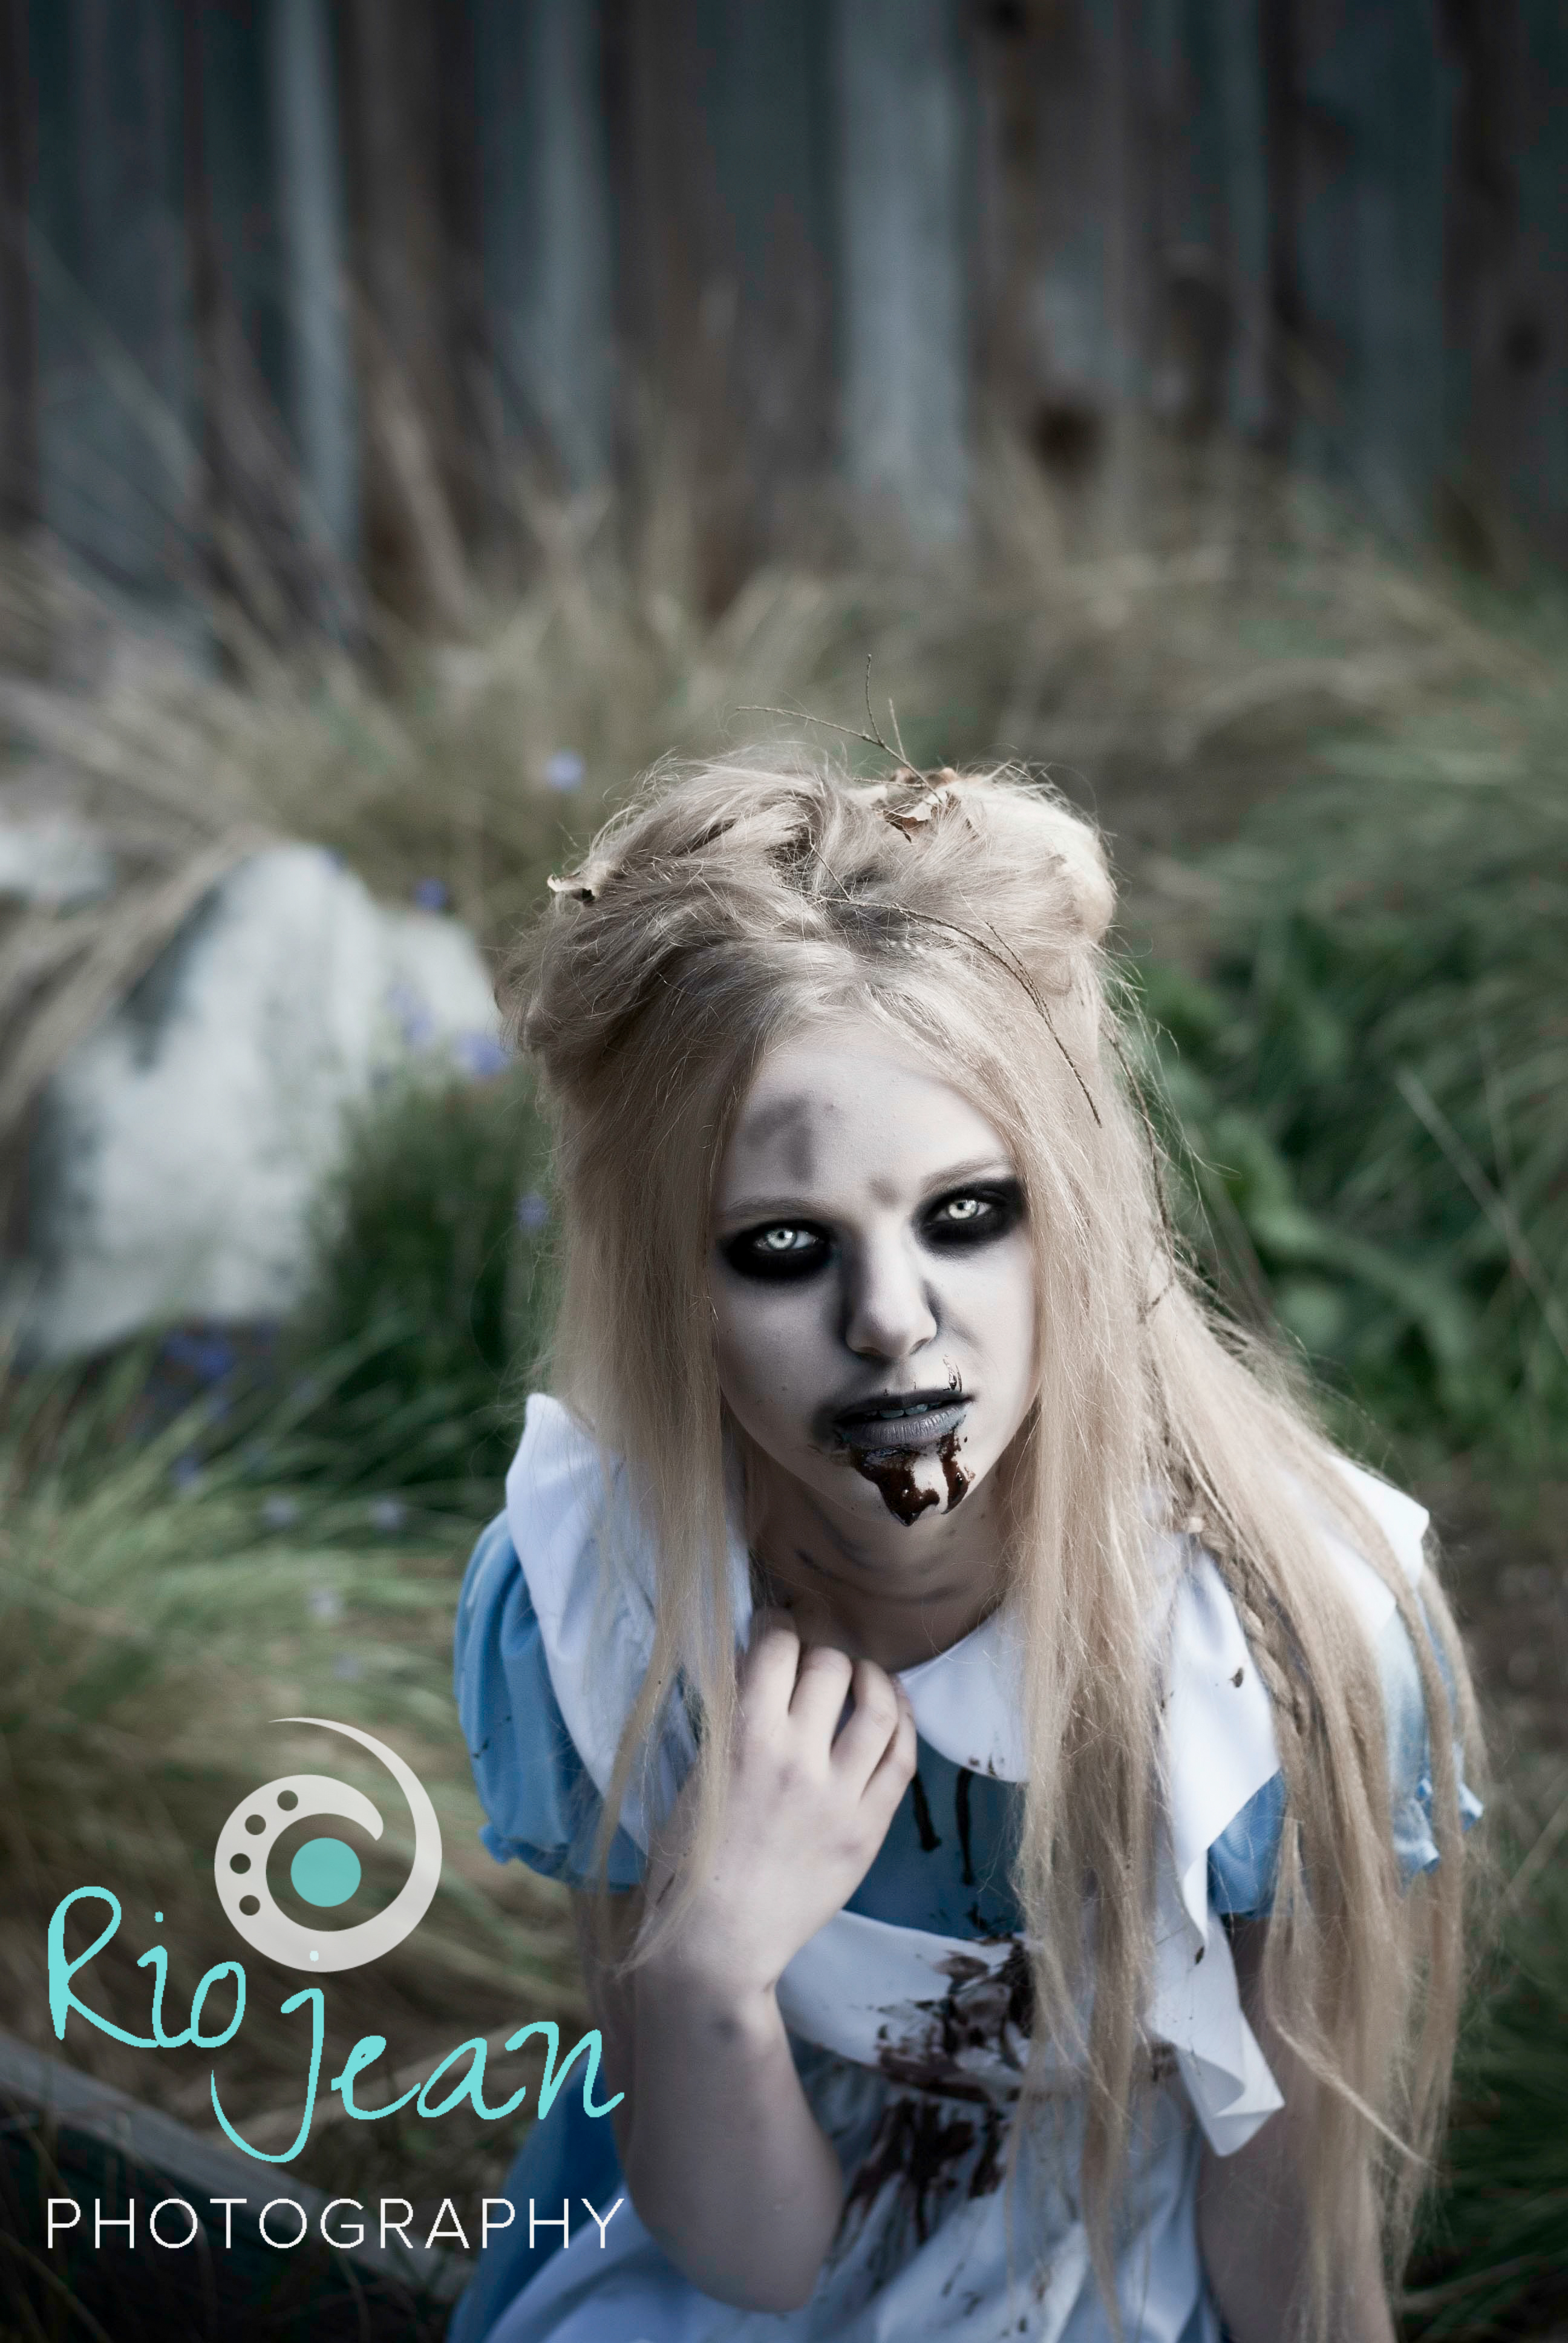 rio jean photography – tacoma, wa {halloween stylized shoot} » rio